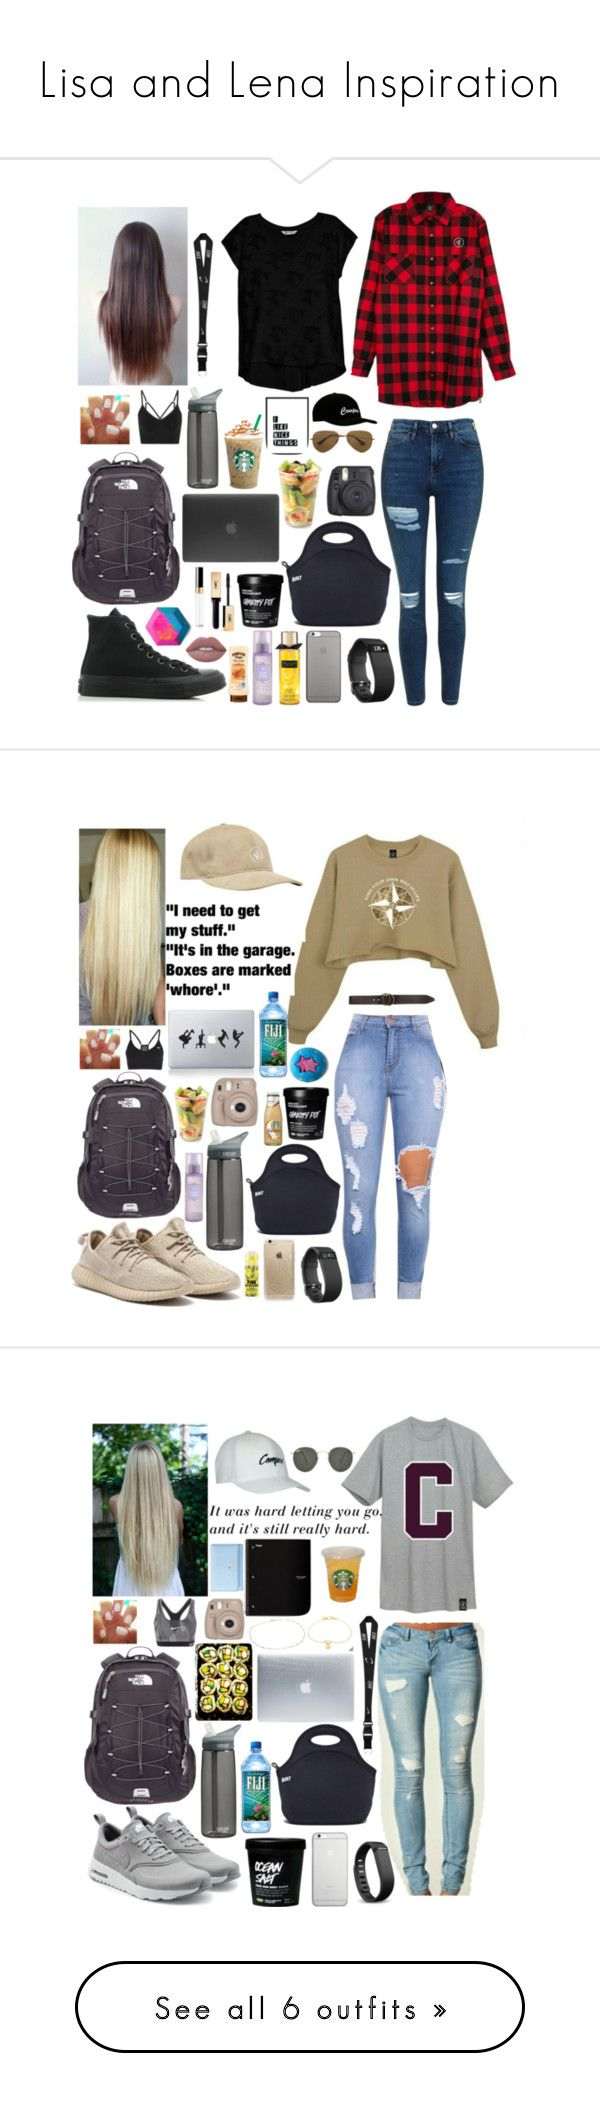 """Lisa and Lena Inspiration"" by lelandjade ❤ liked on Polyvore featuring Bobeau, Topshop, Converse, NIKE, The North Face, Fitbit, Native Union, Built, Lime Crime and Yves Saint Laurent"